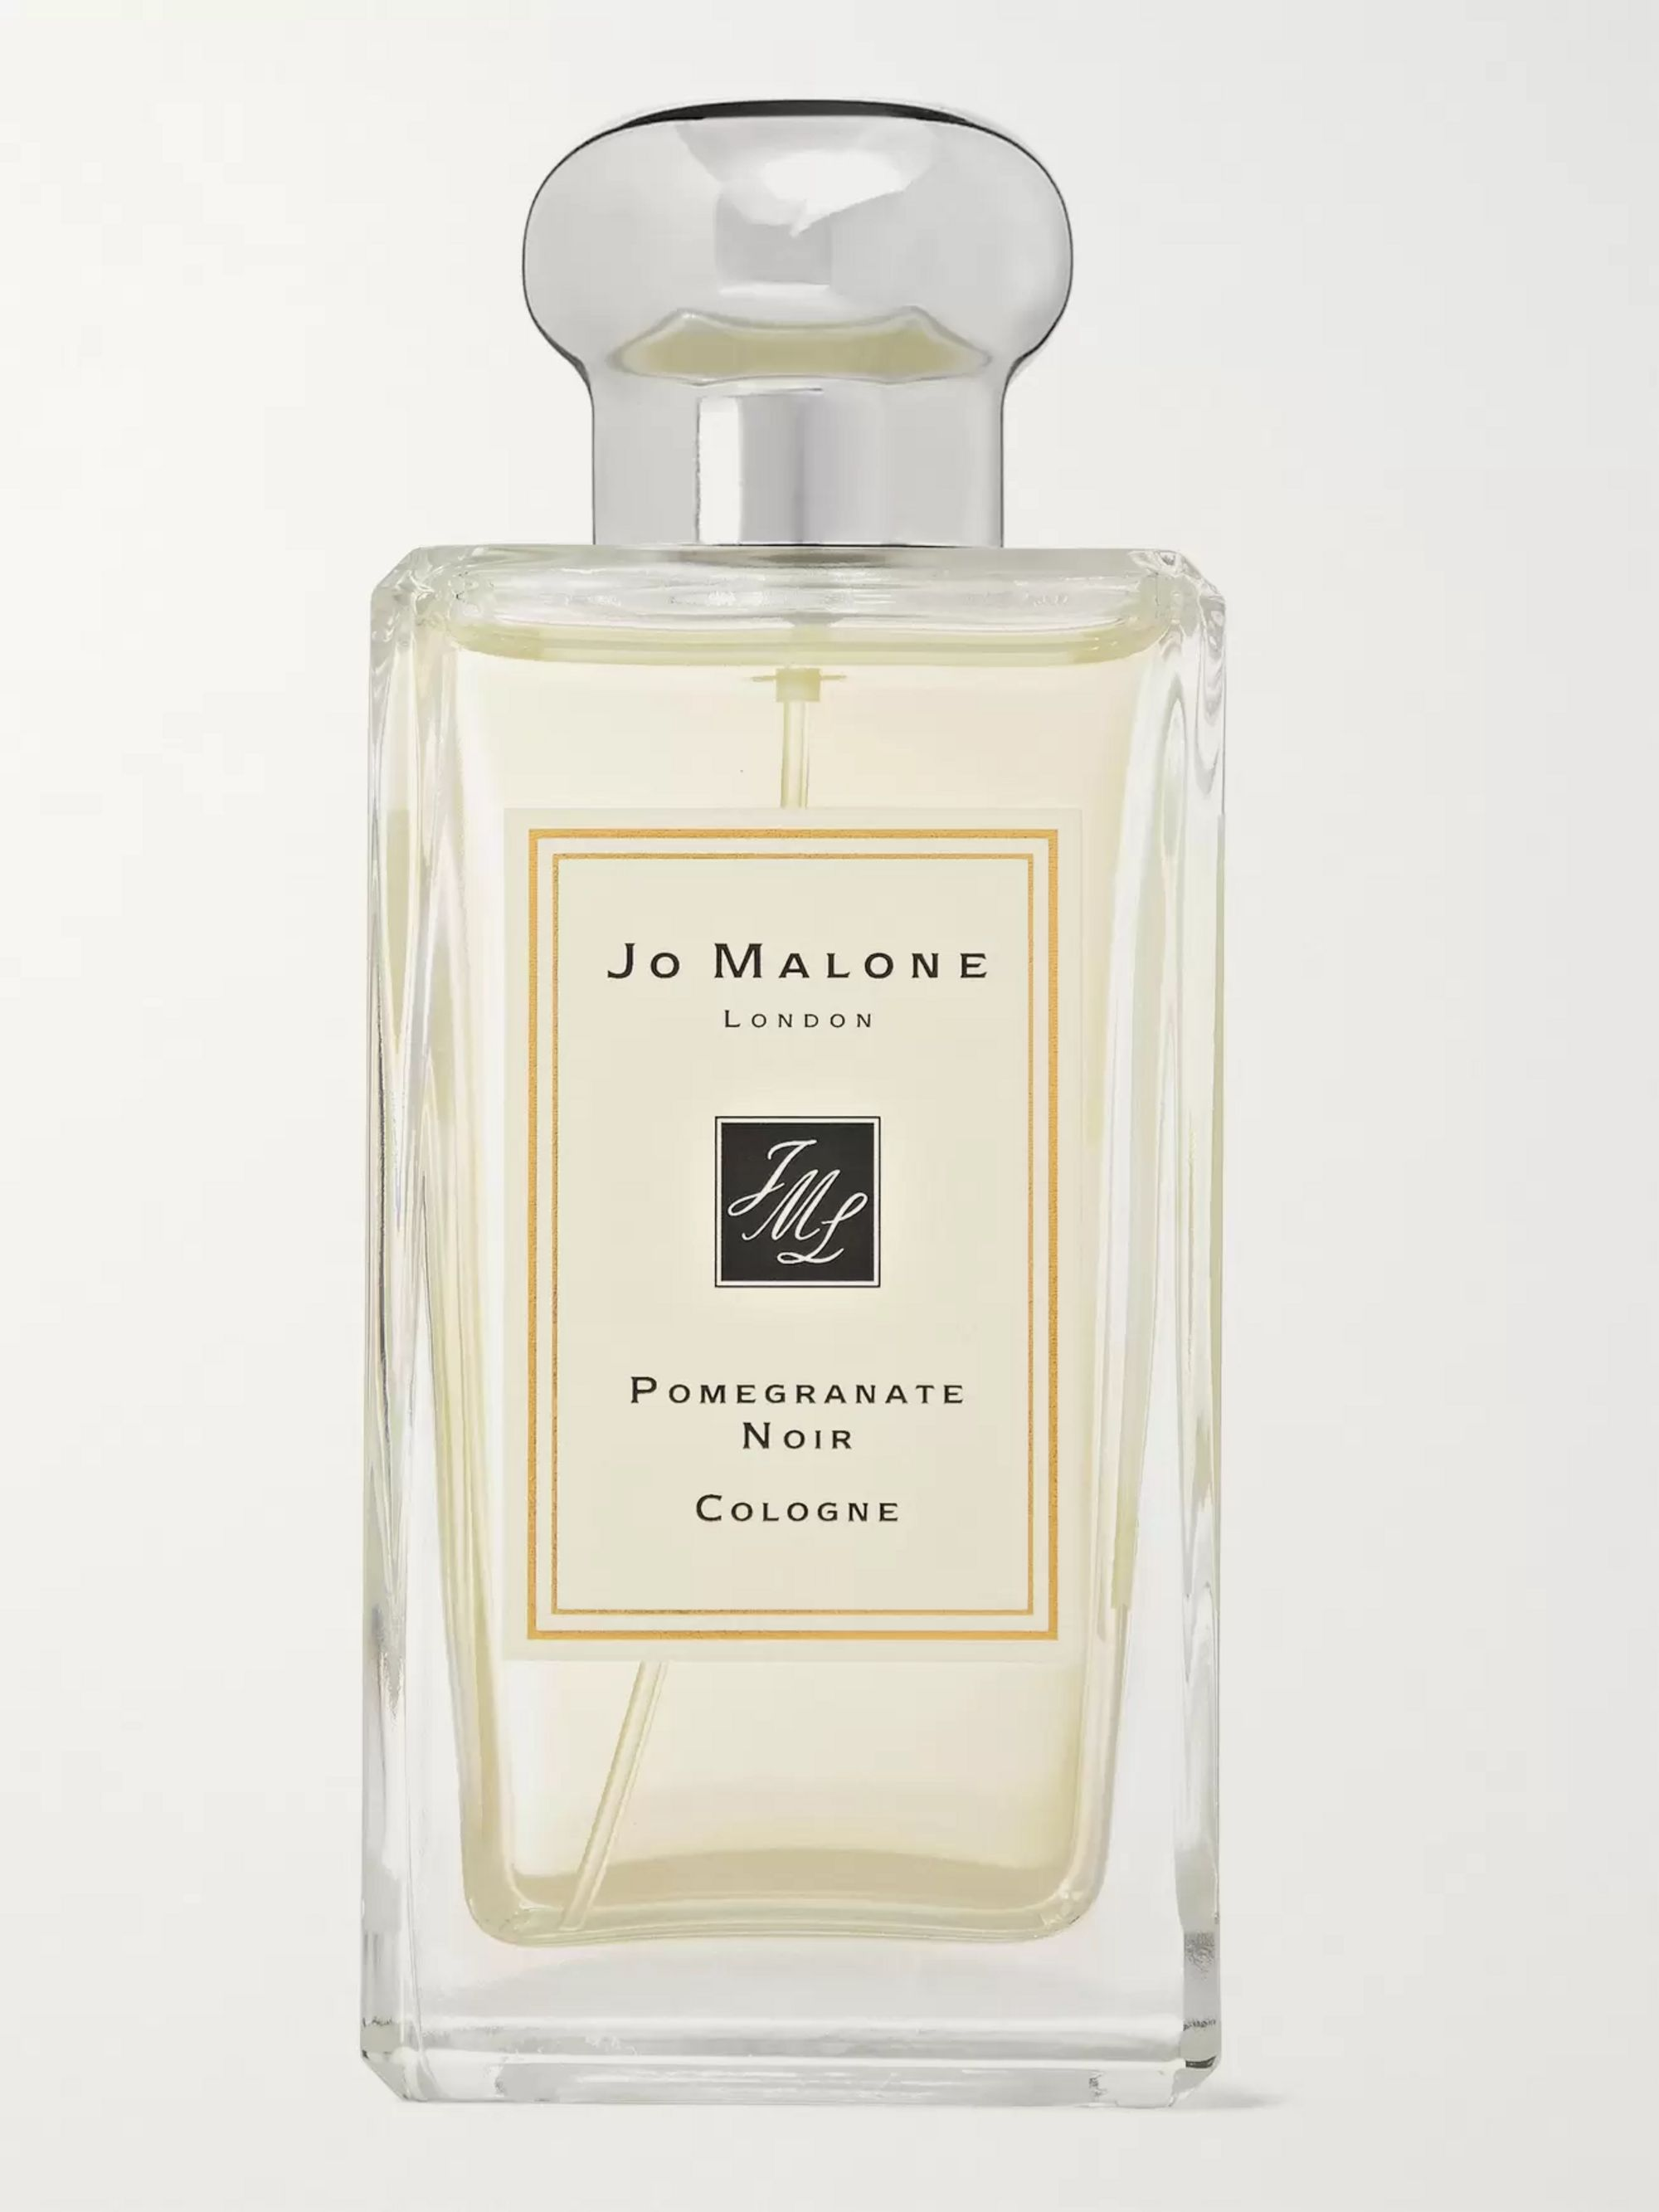 Jo Malone London Pomegranate Noir Cologne, 100ml